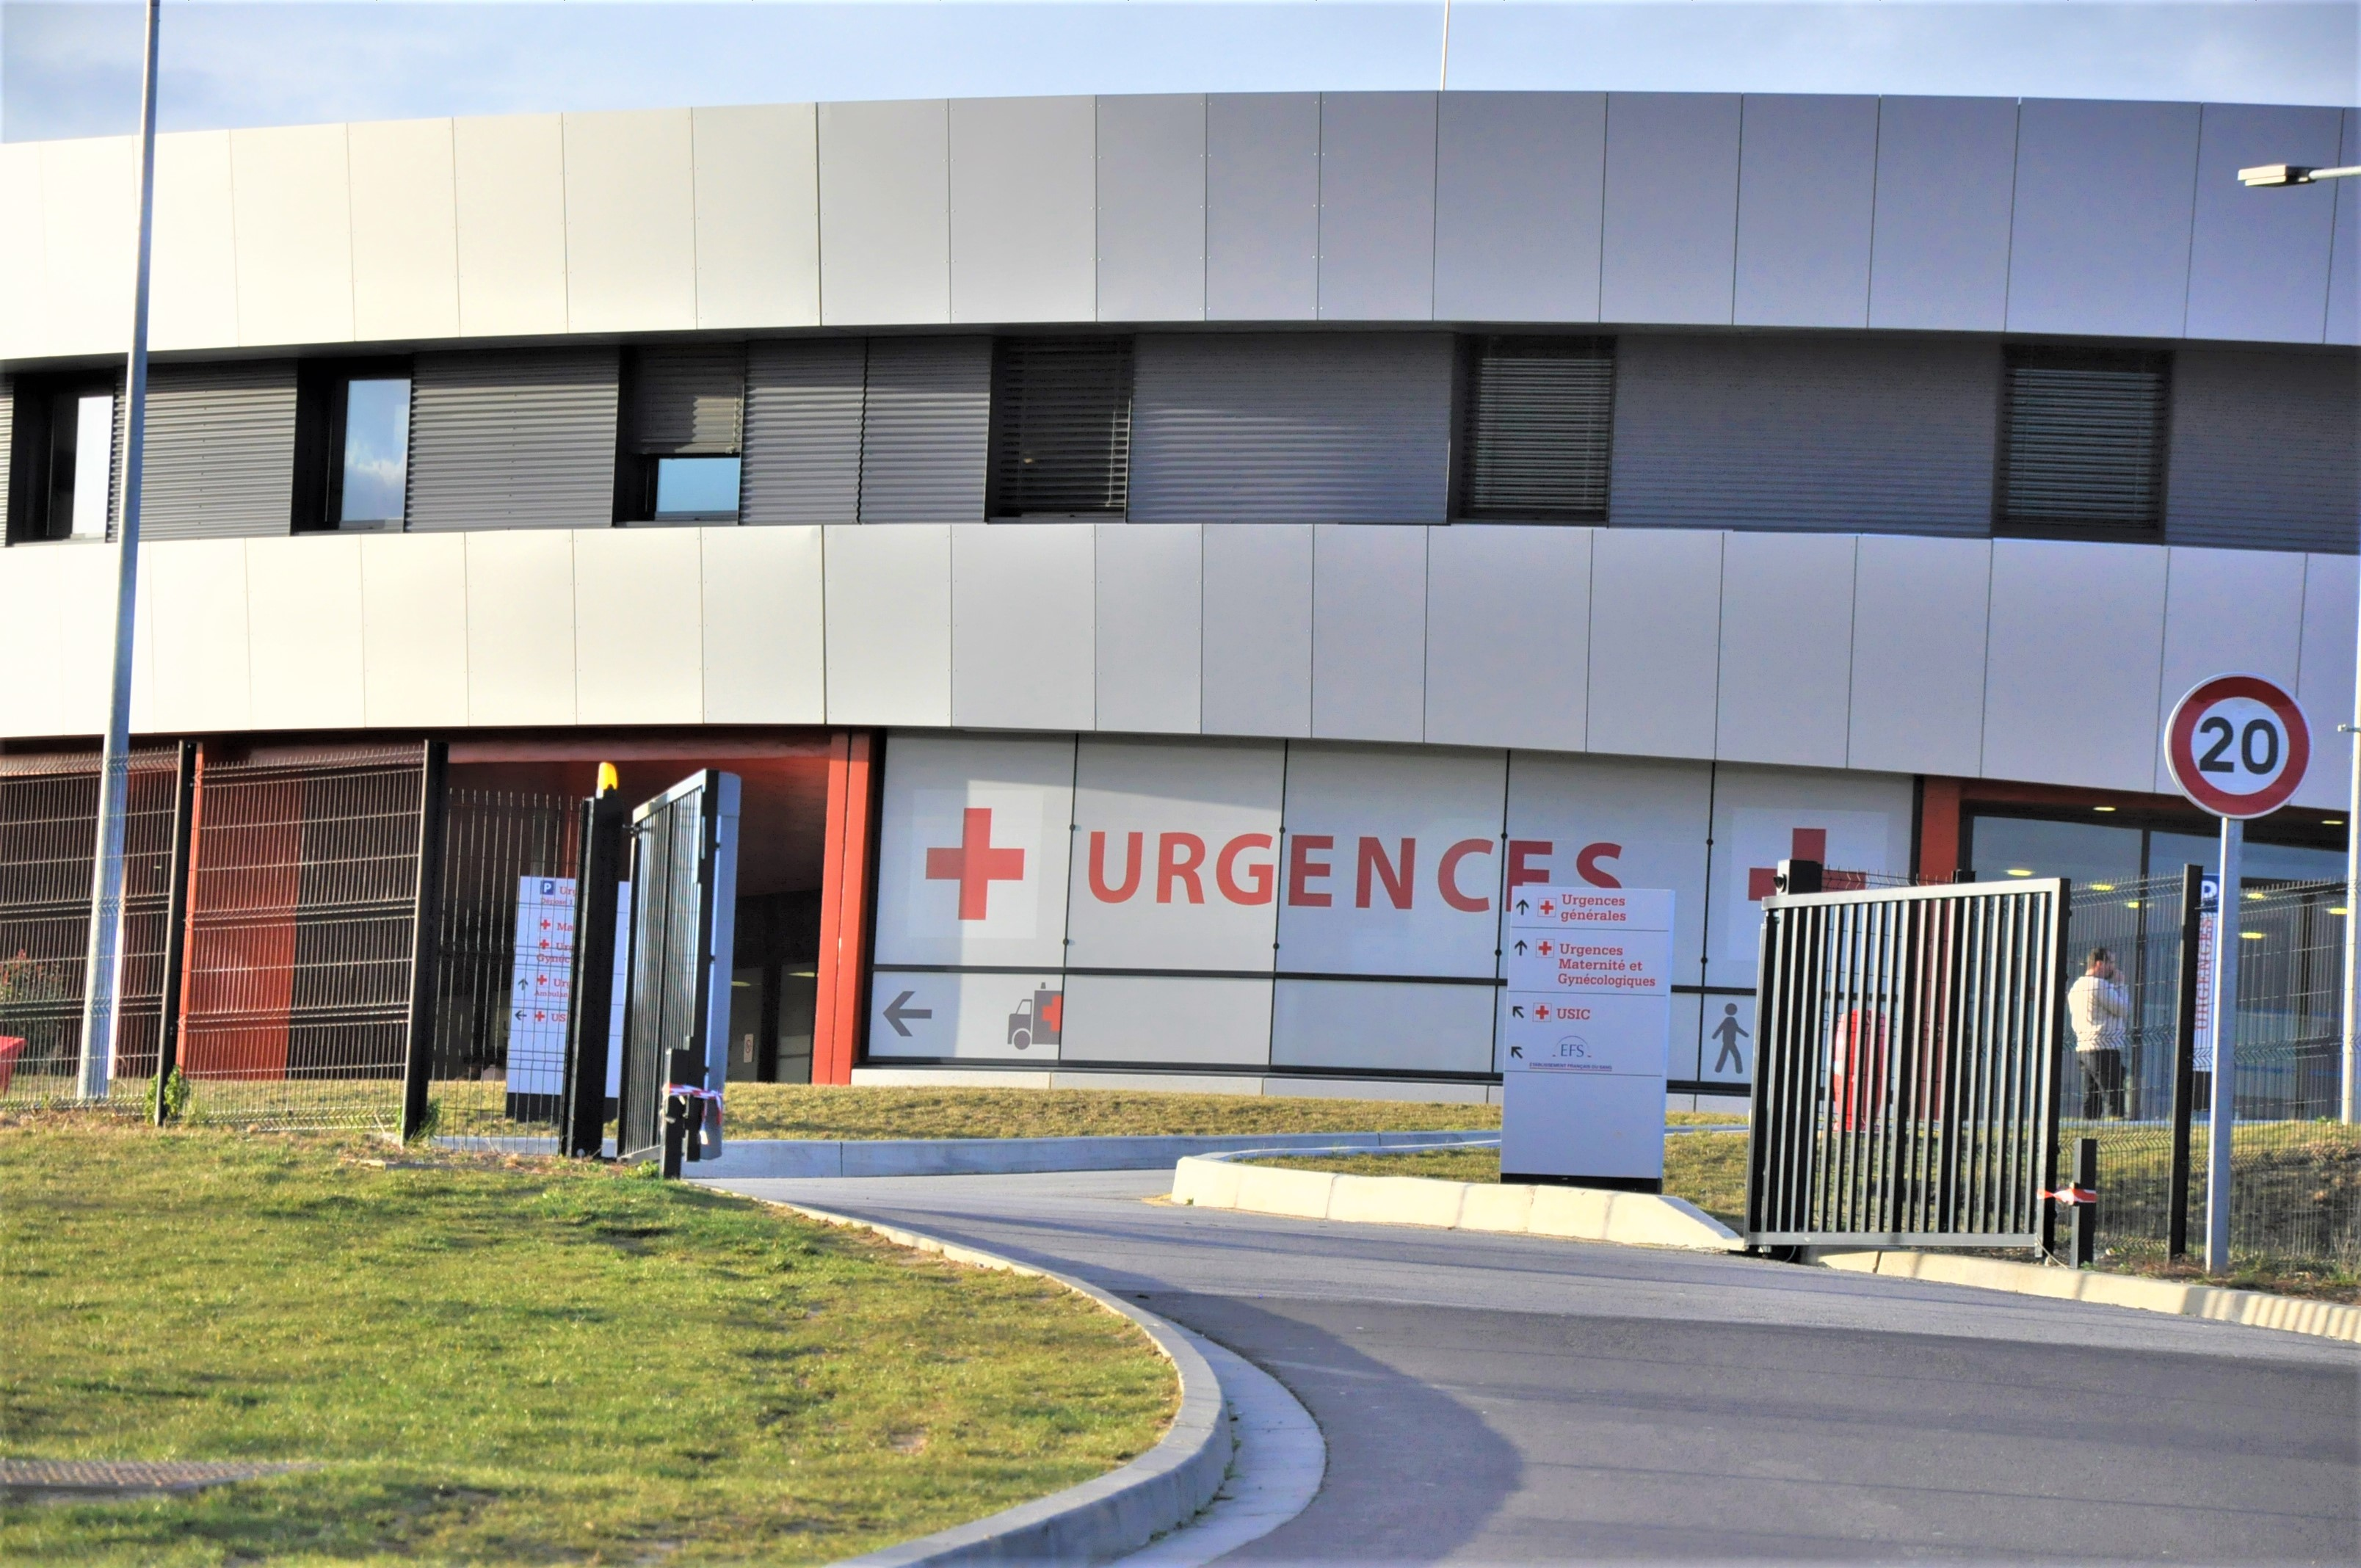 Le couple a été admis aux urgences du centre hospitalier de Cambolle (Photo © infonormandie)